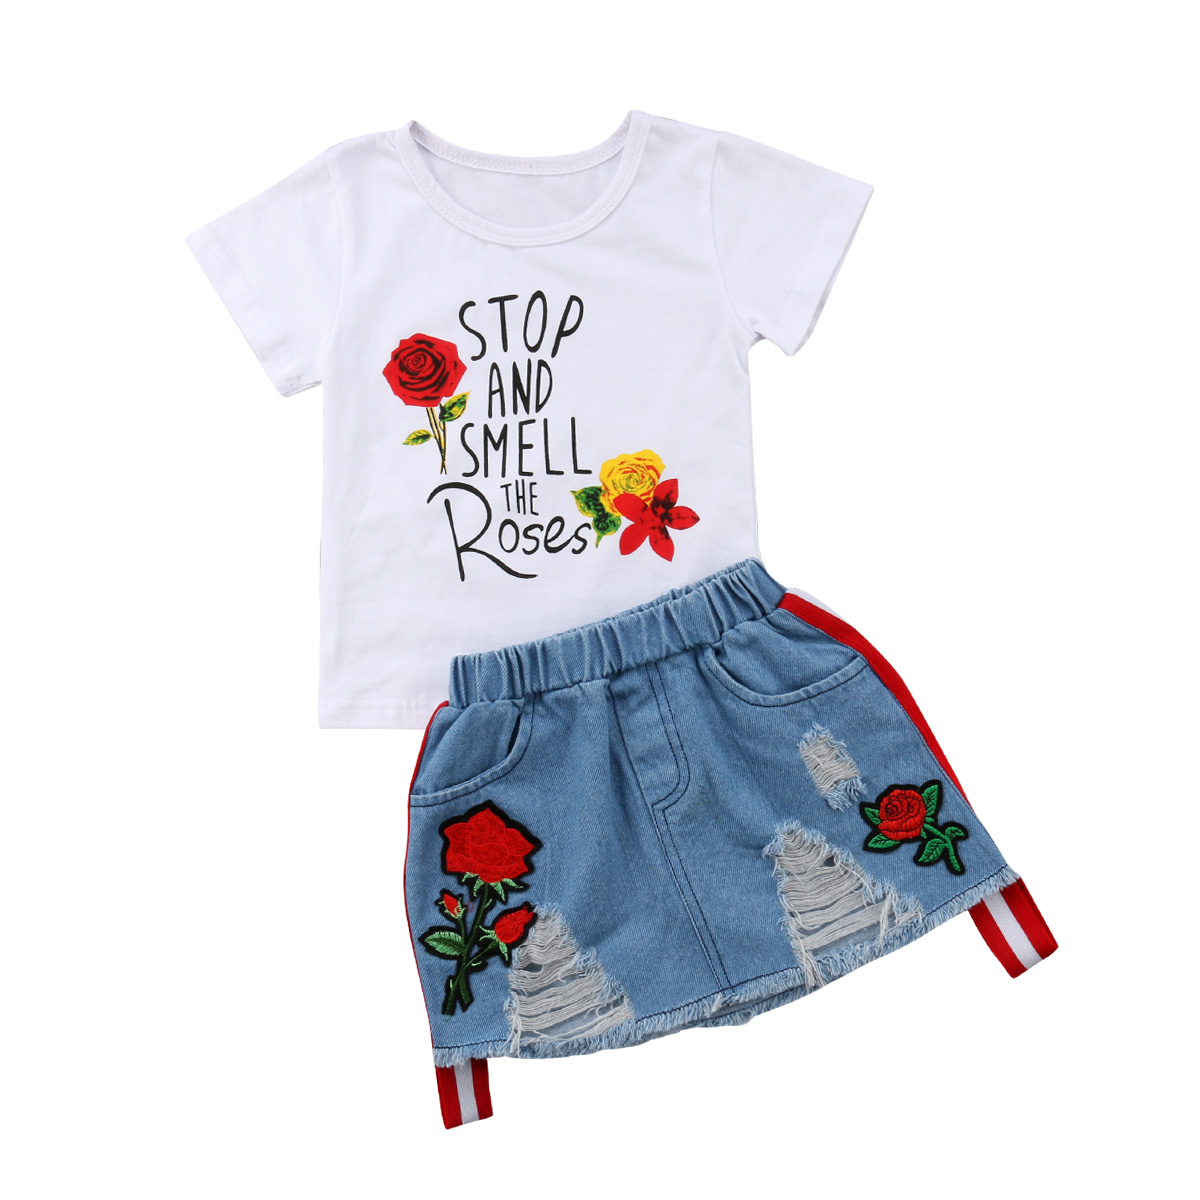 Toddler Kids Girl Denim Skirt Set with Rose Flower Letter Print T-shirt Tops 2pcs Outfits kids outfits letter pattern tops in white